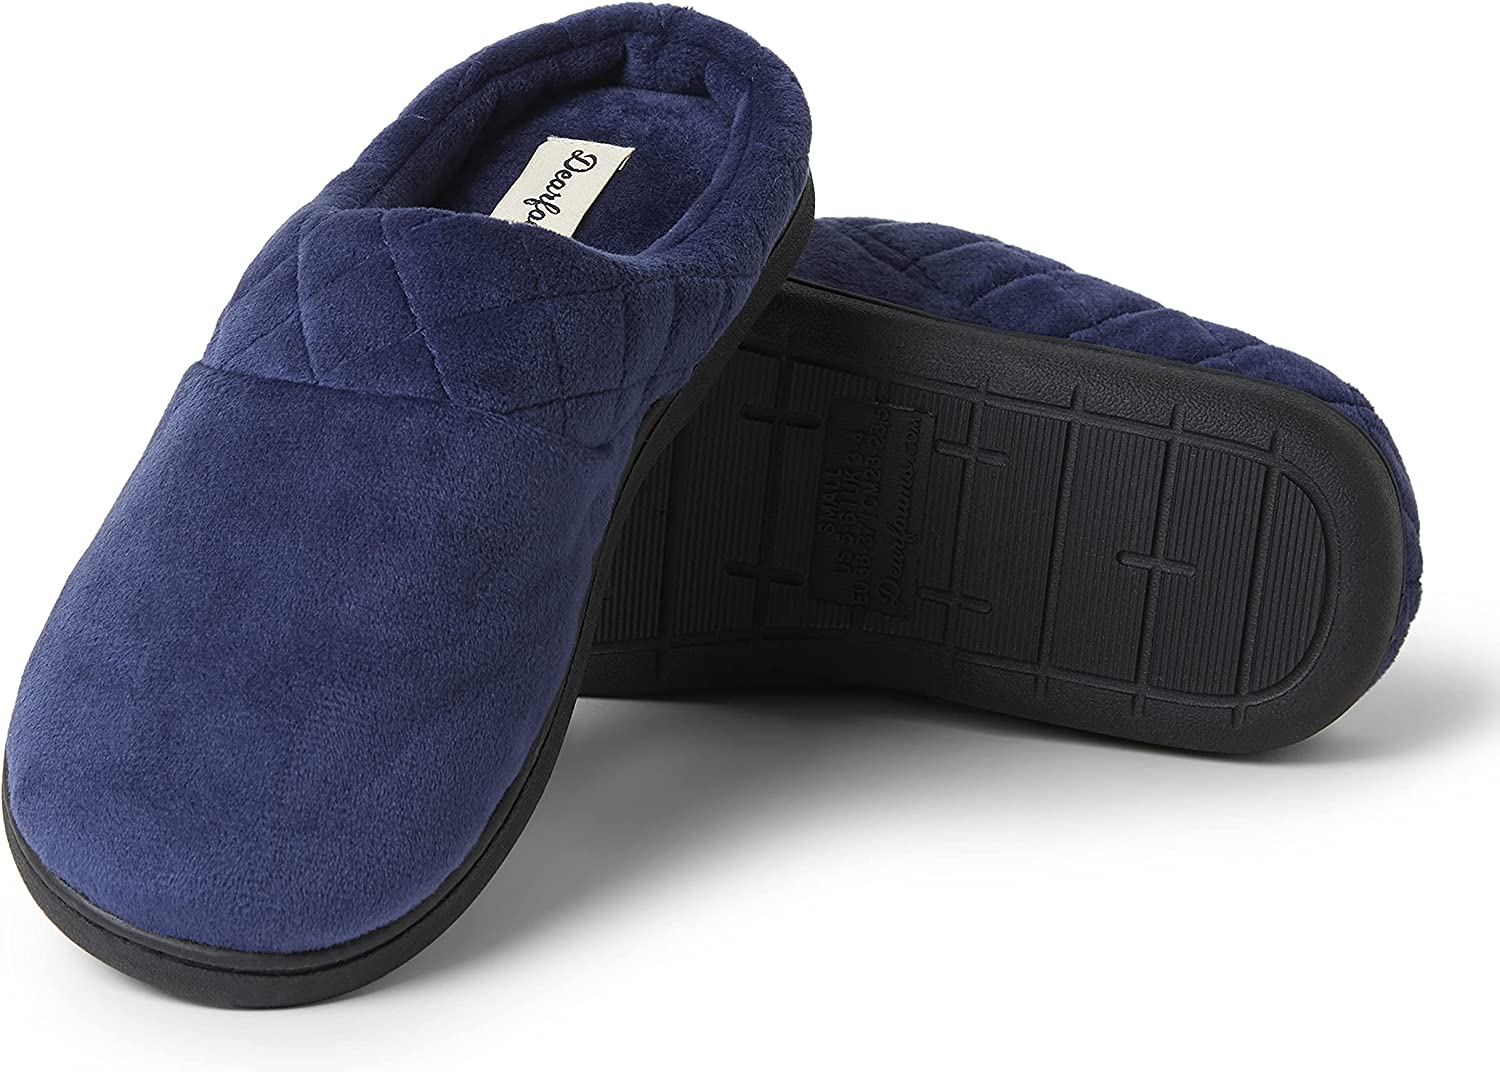 Dearfoams Women's Darcy Microfiber Velour Clog with Quilted Cuff Slipper